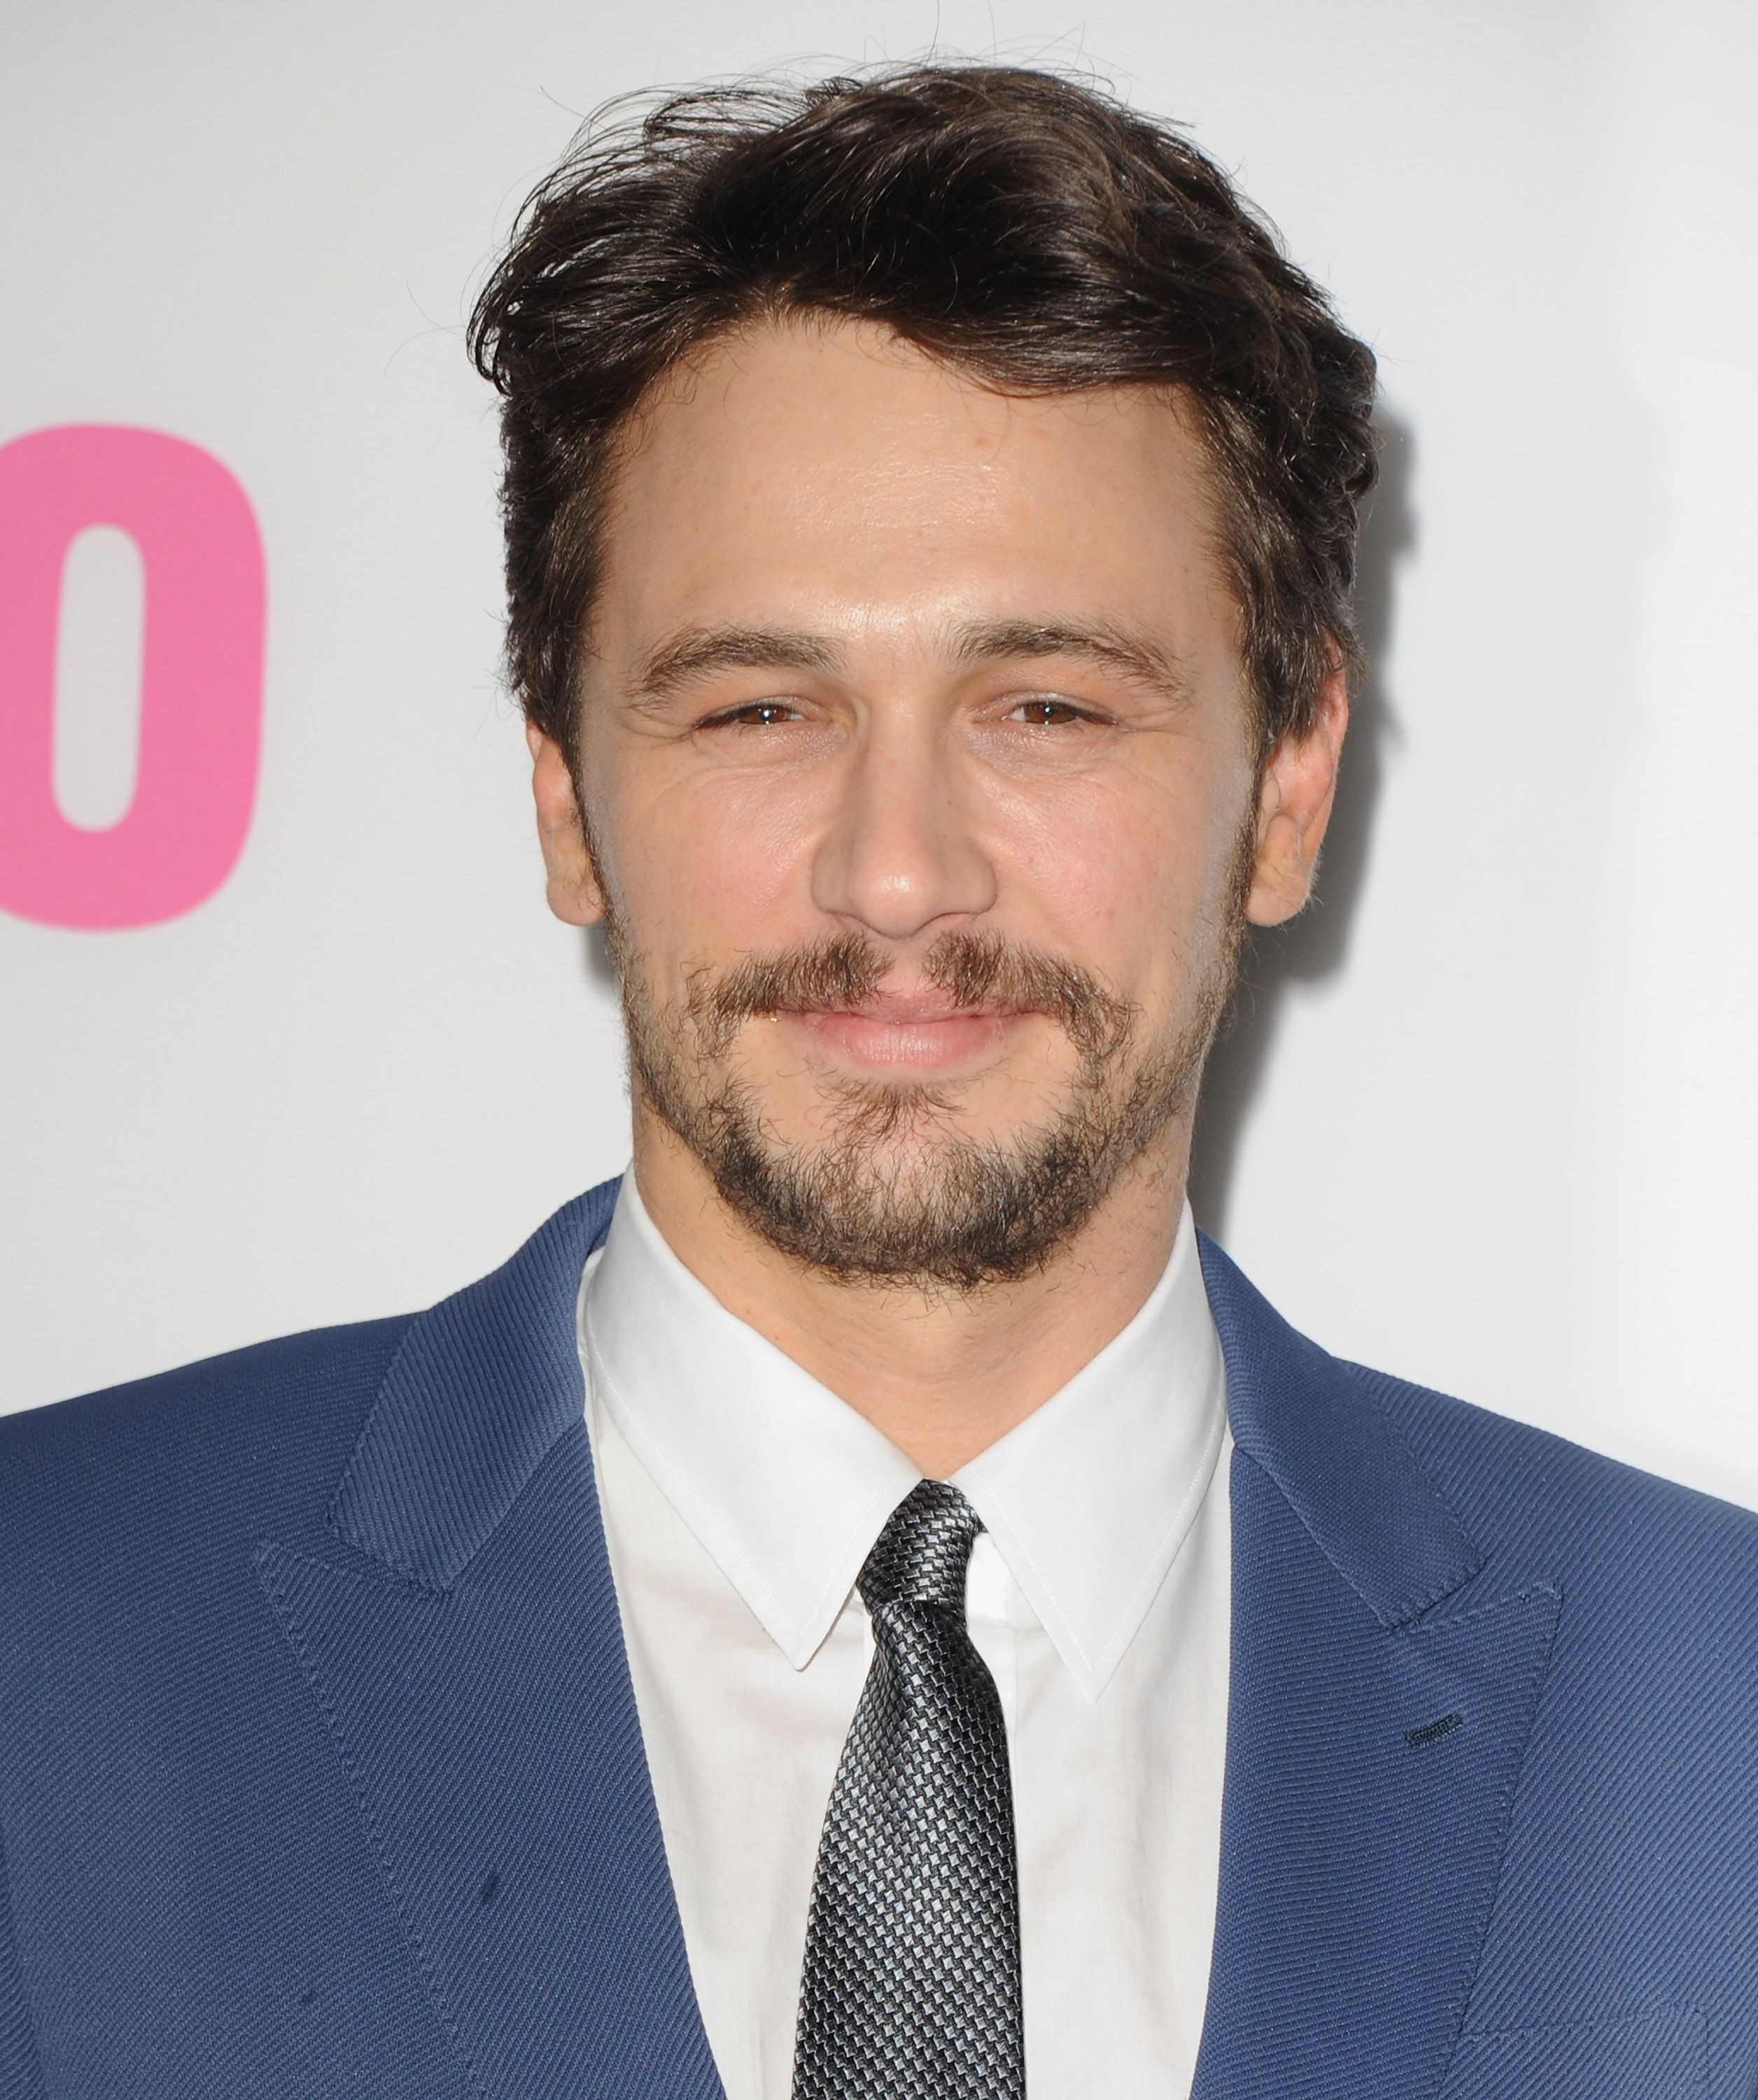 James Franco arrives at the Los Angeles Premiere  Palo Alto  at the DGA Theatre on May 5, 2014 in Los Angeles, California.